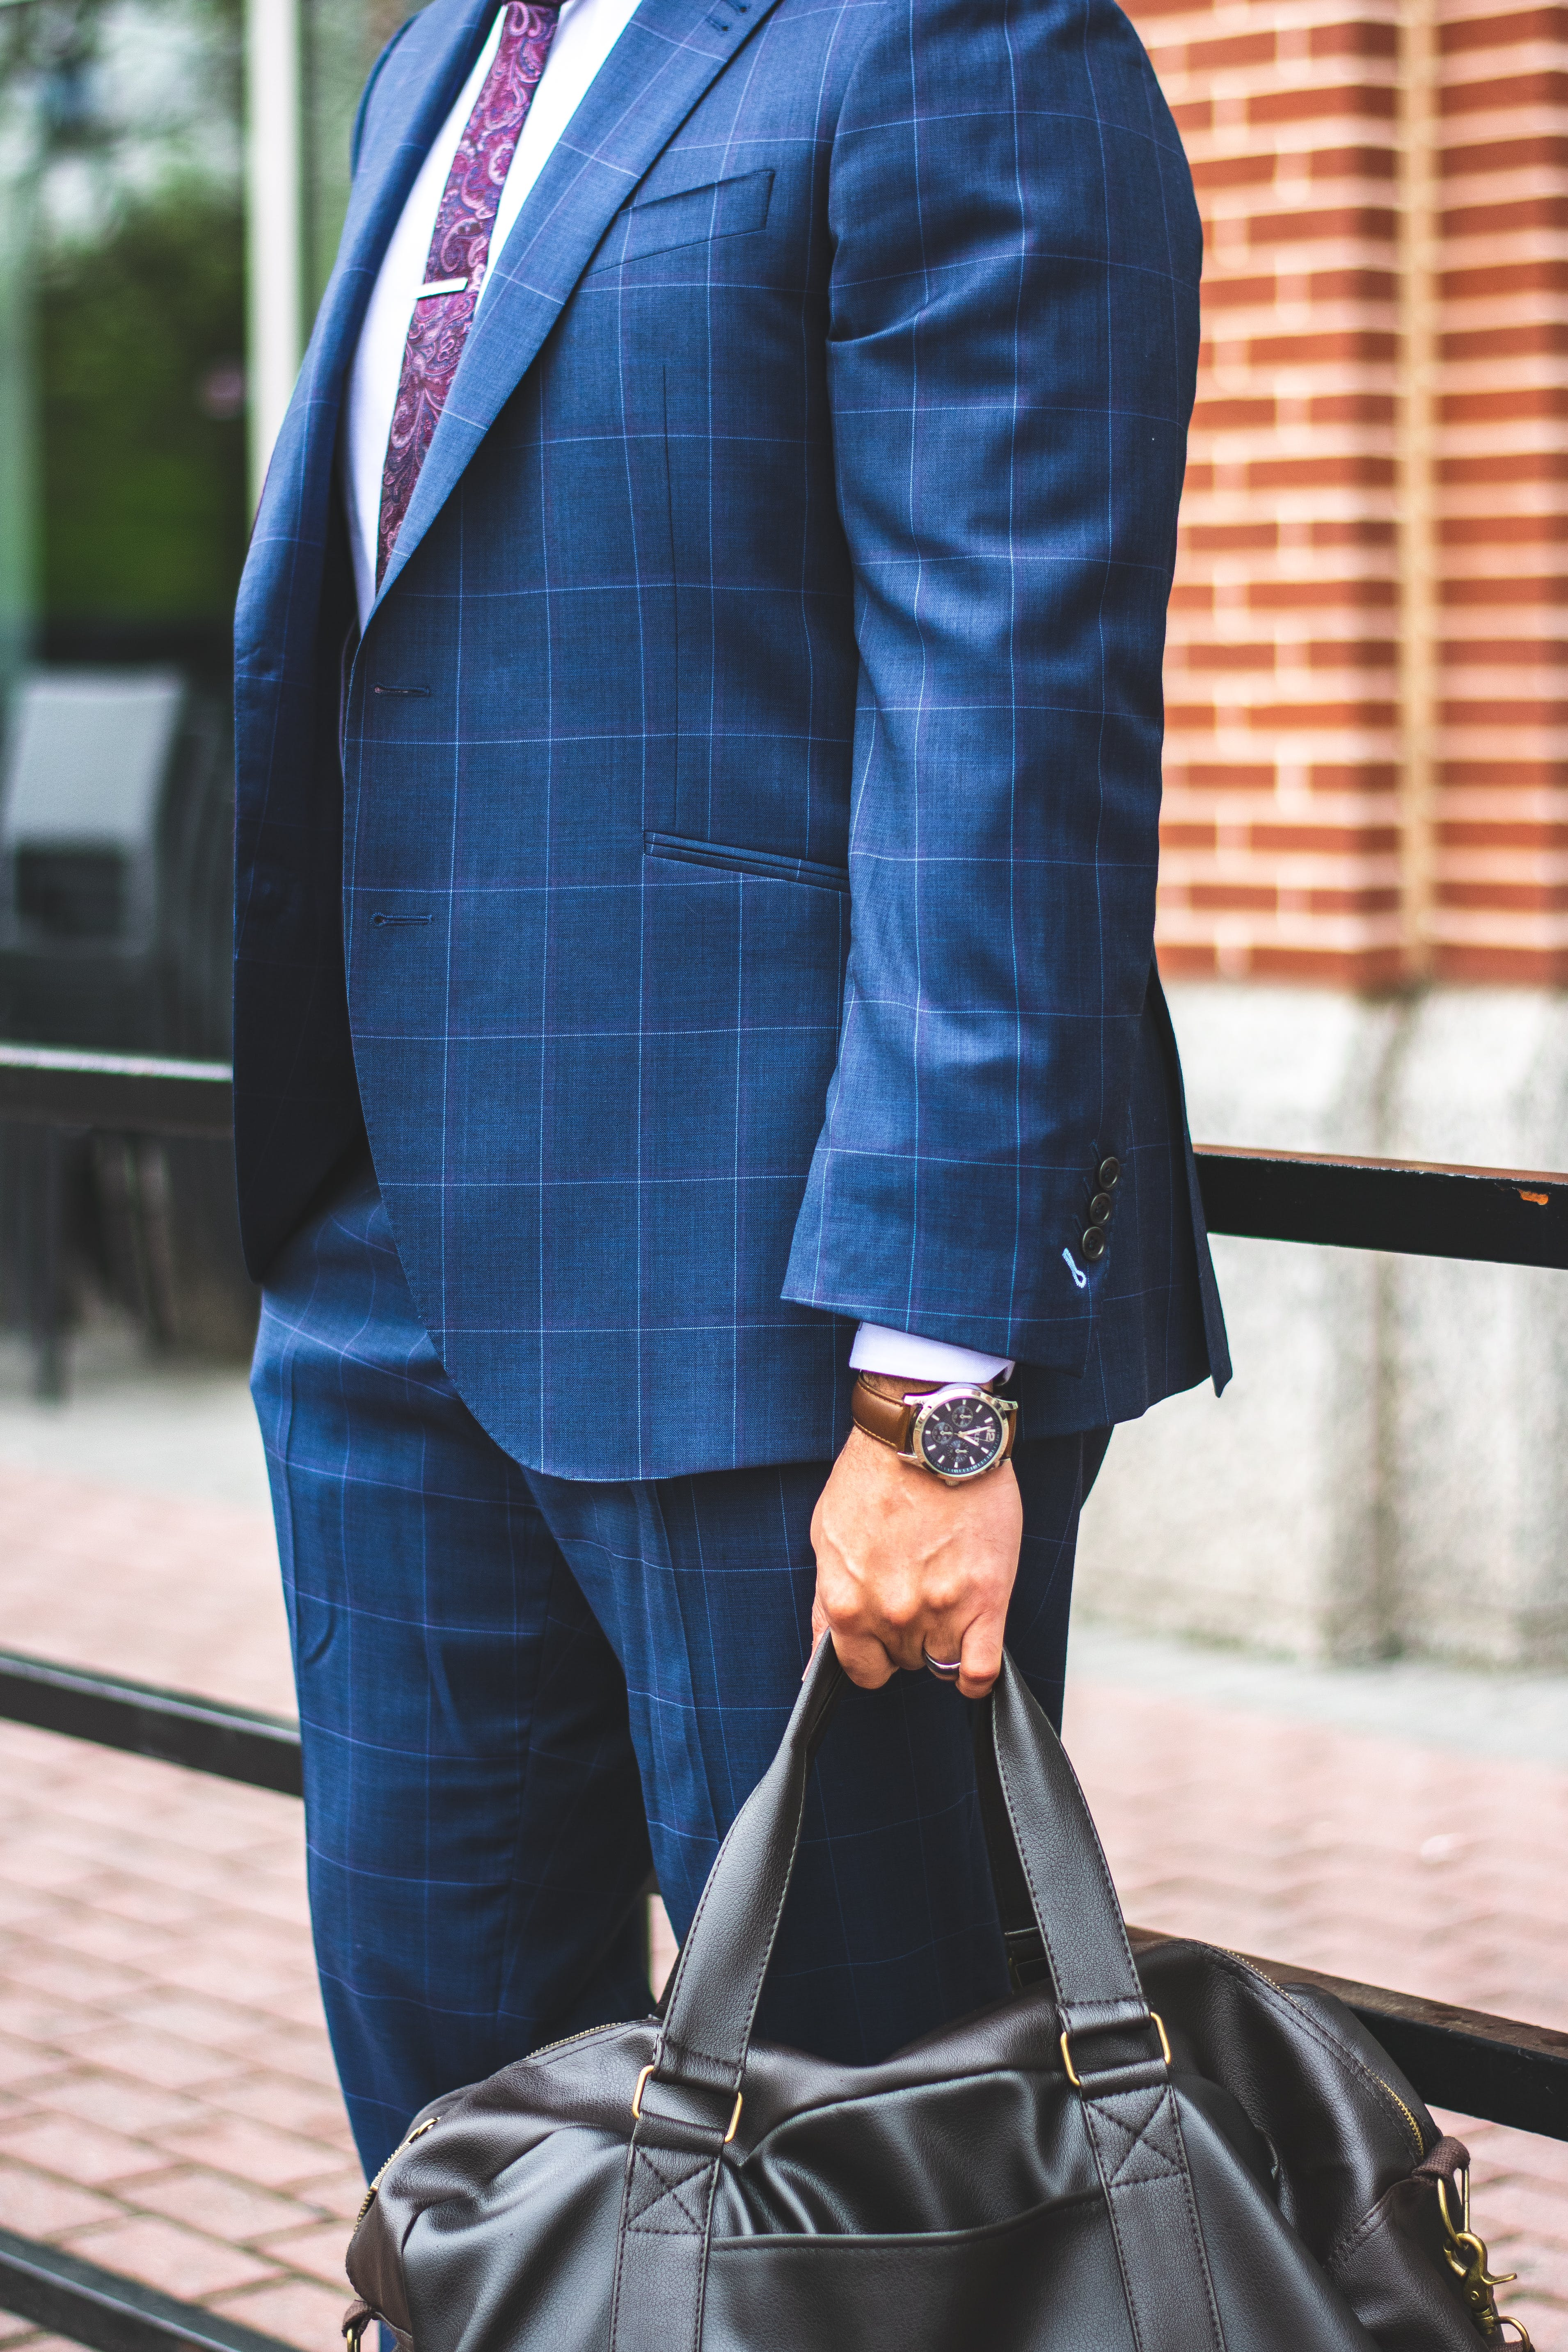 Person Wearing Blue Suit Jacket and Dress Pants Holding Tote Bag